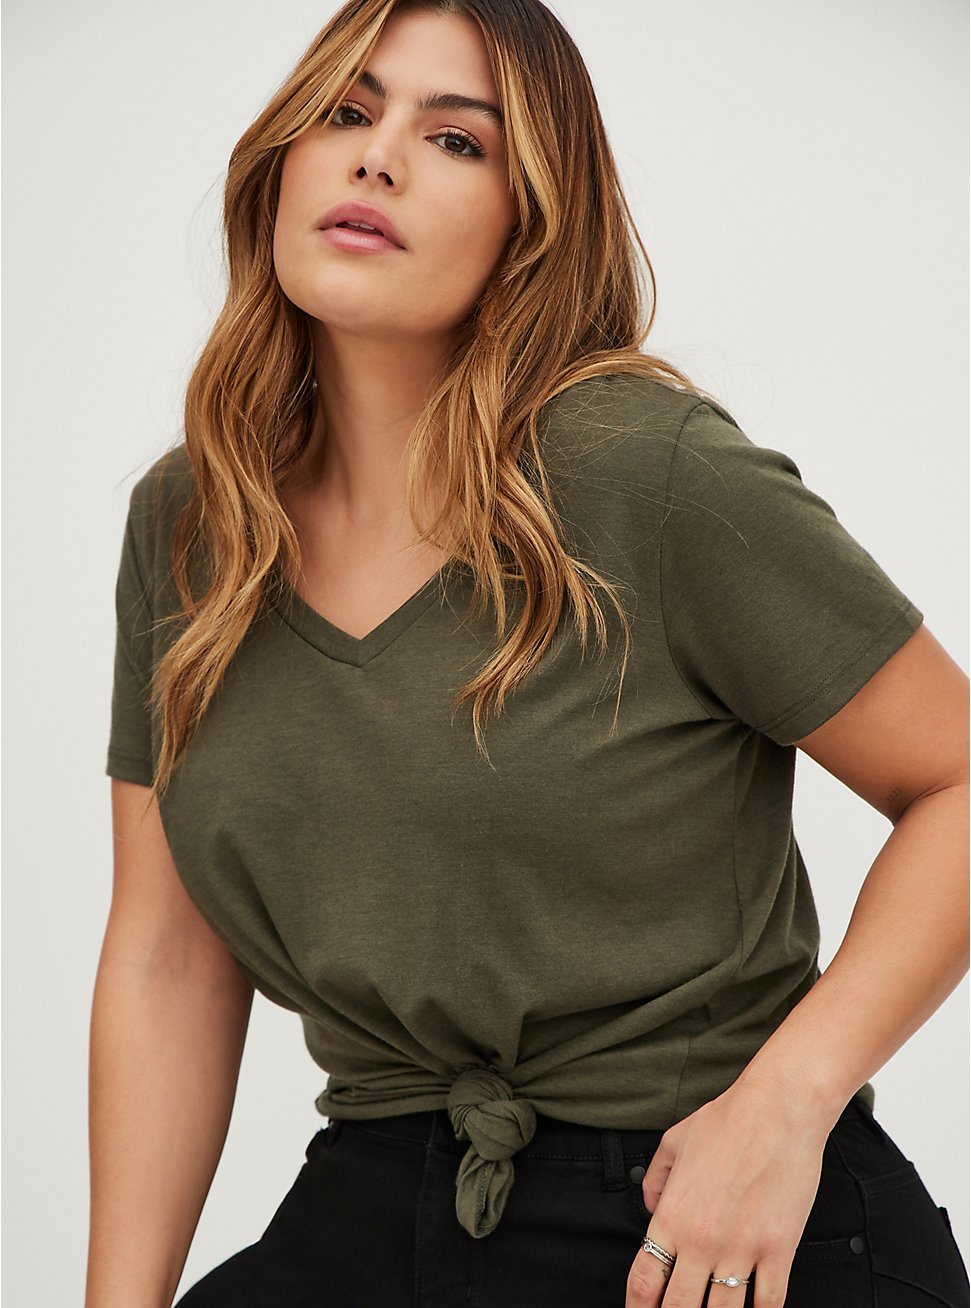 Girlfriend Tee - Signature Jersey Olive Green, DEEP DEPTHS, hi-res